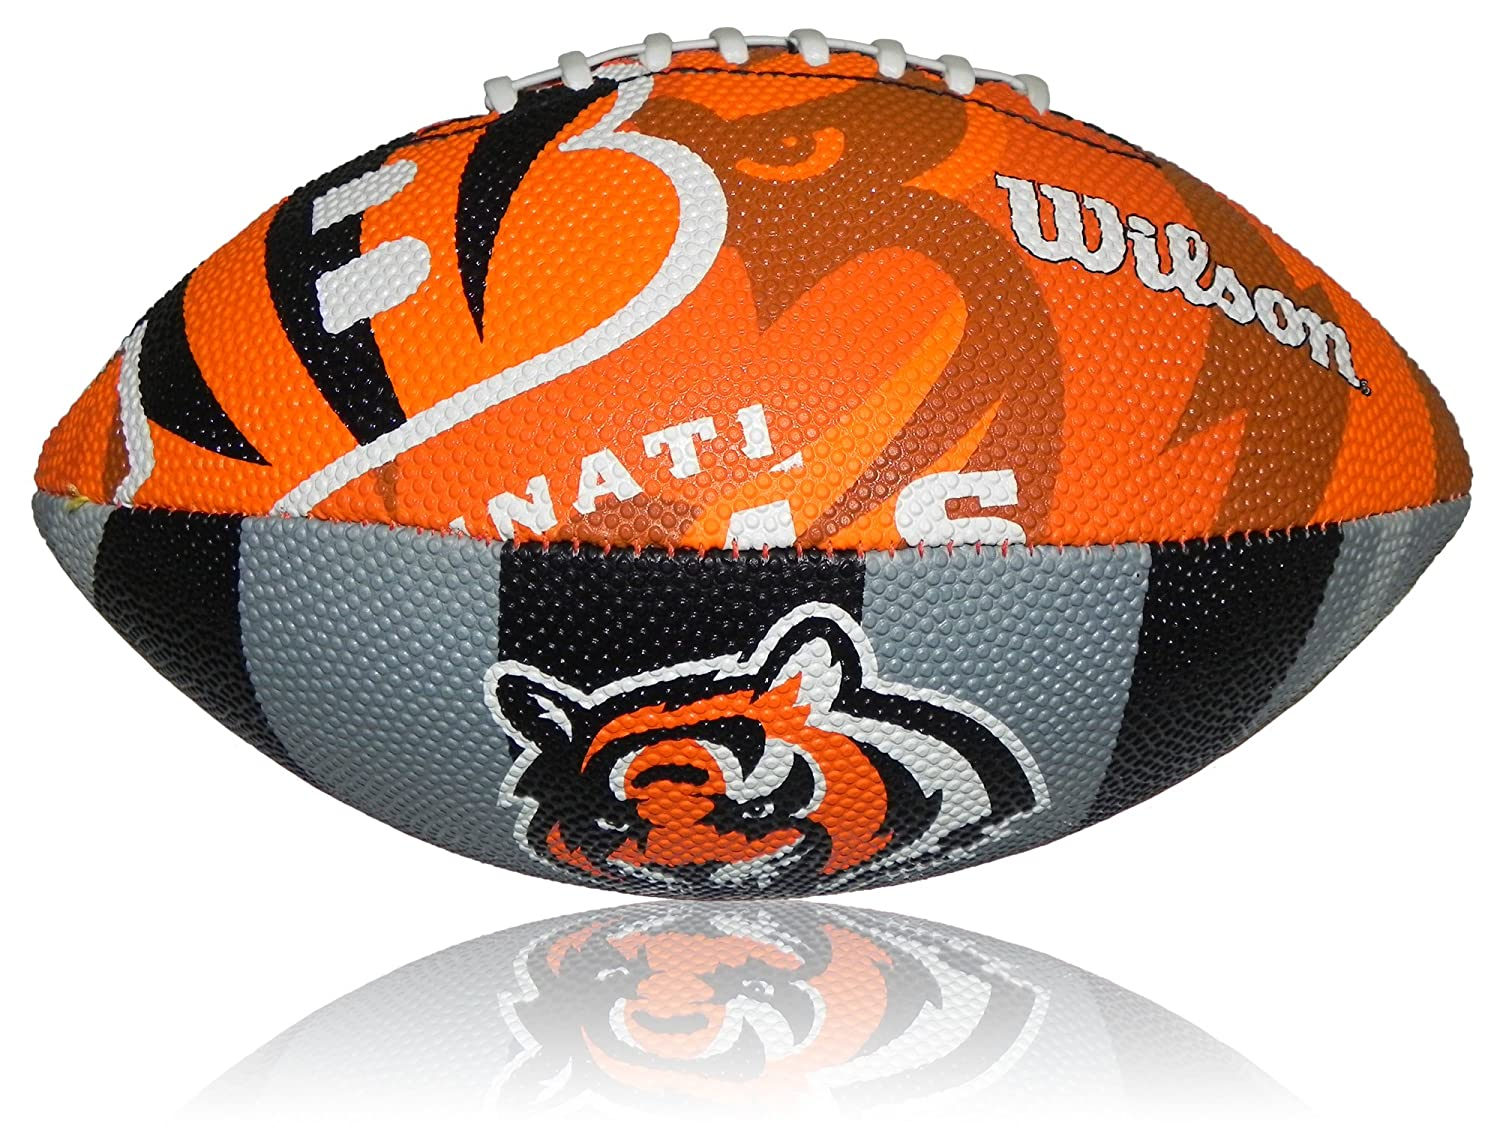 Wilson NFL Junior Cincinnati Bengals Football Logo WTF1534XBCN, Multi, 5